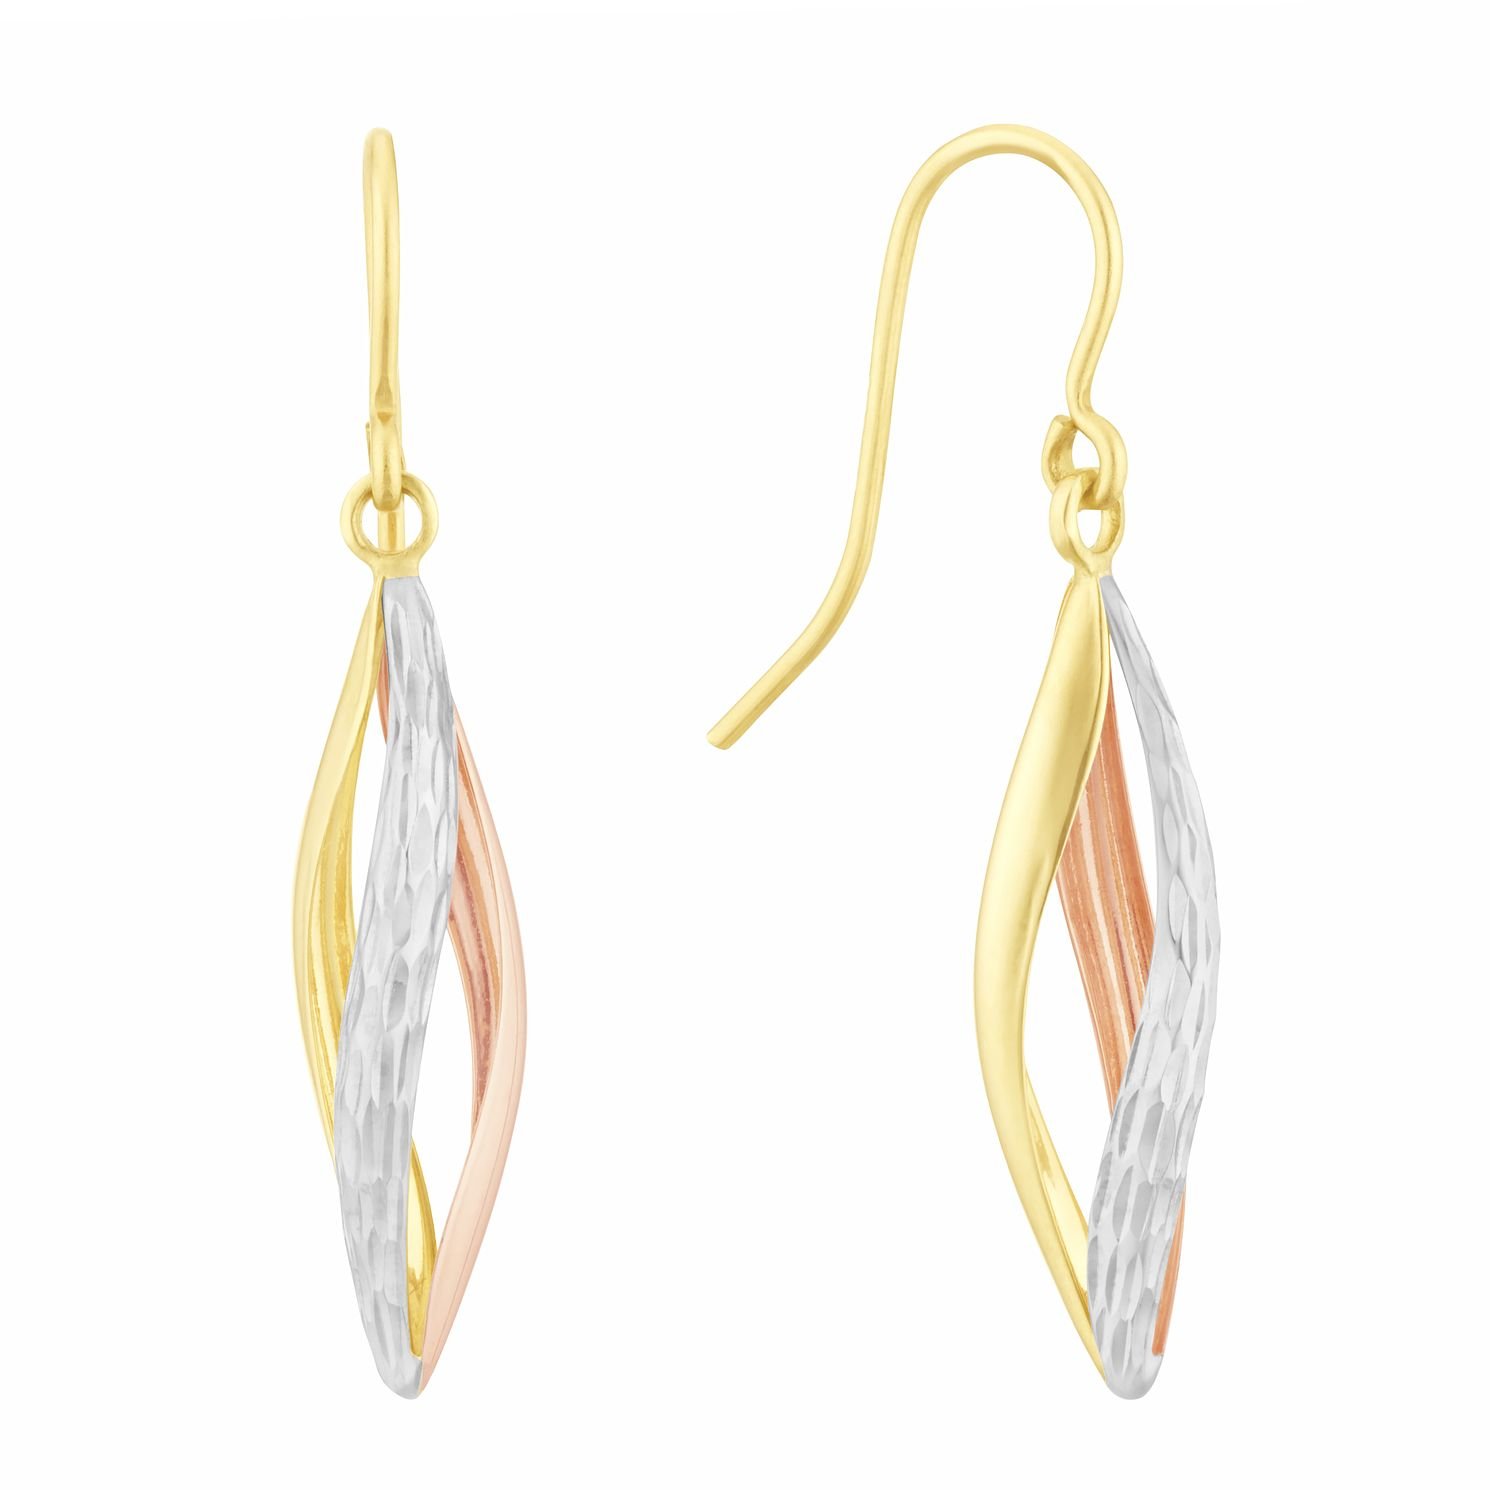 9ct Two Tone Gold Caged Drop Earrings - Product number 3152901